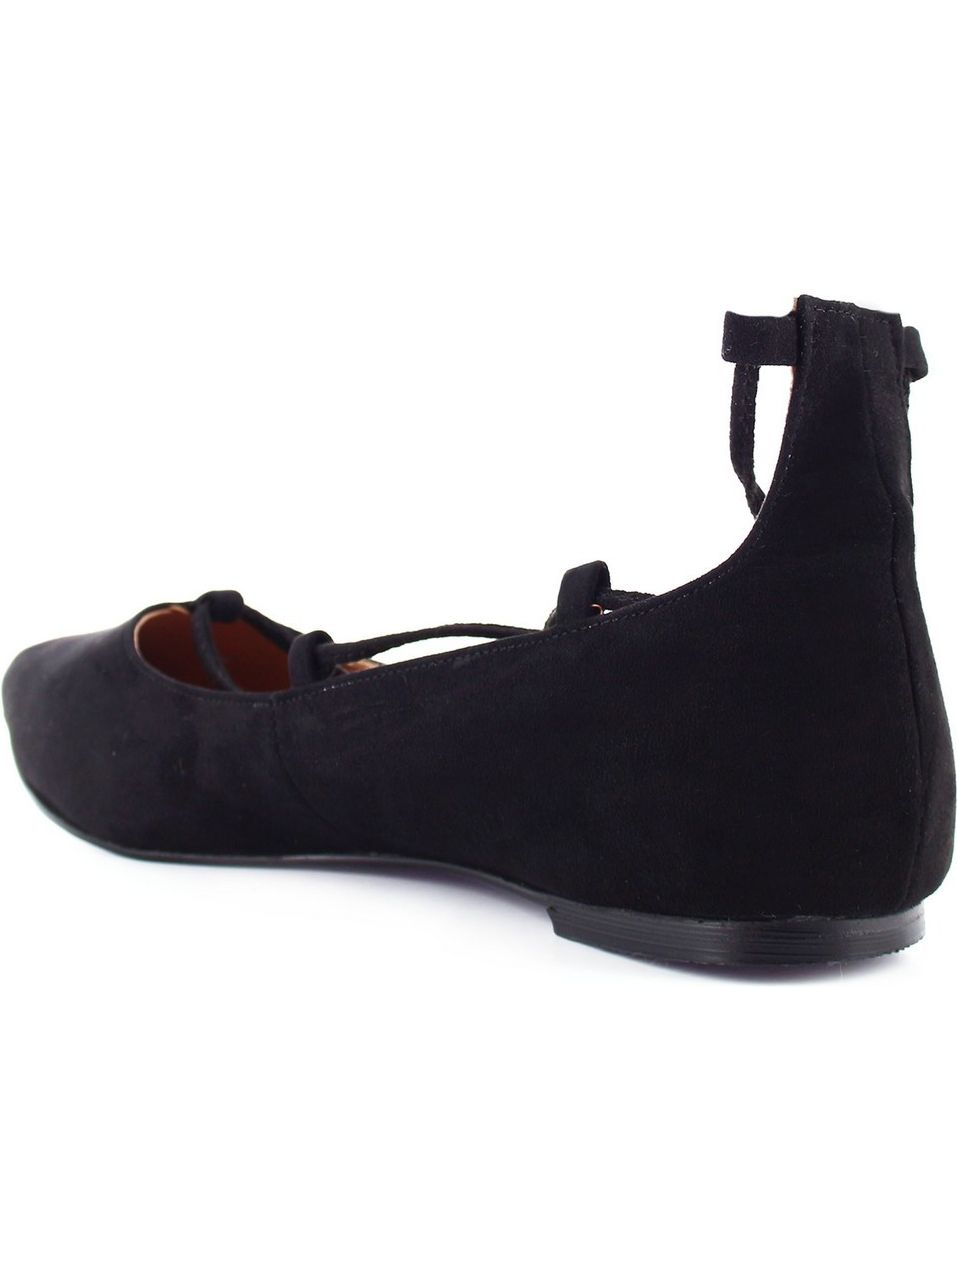 Ceresnia Adult Black Pointed Toe Lace-Up Comfort Stylish Flats